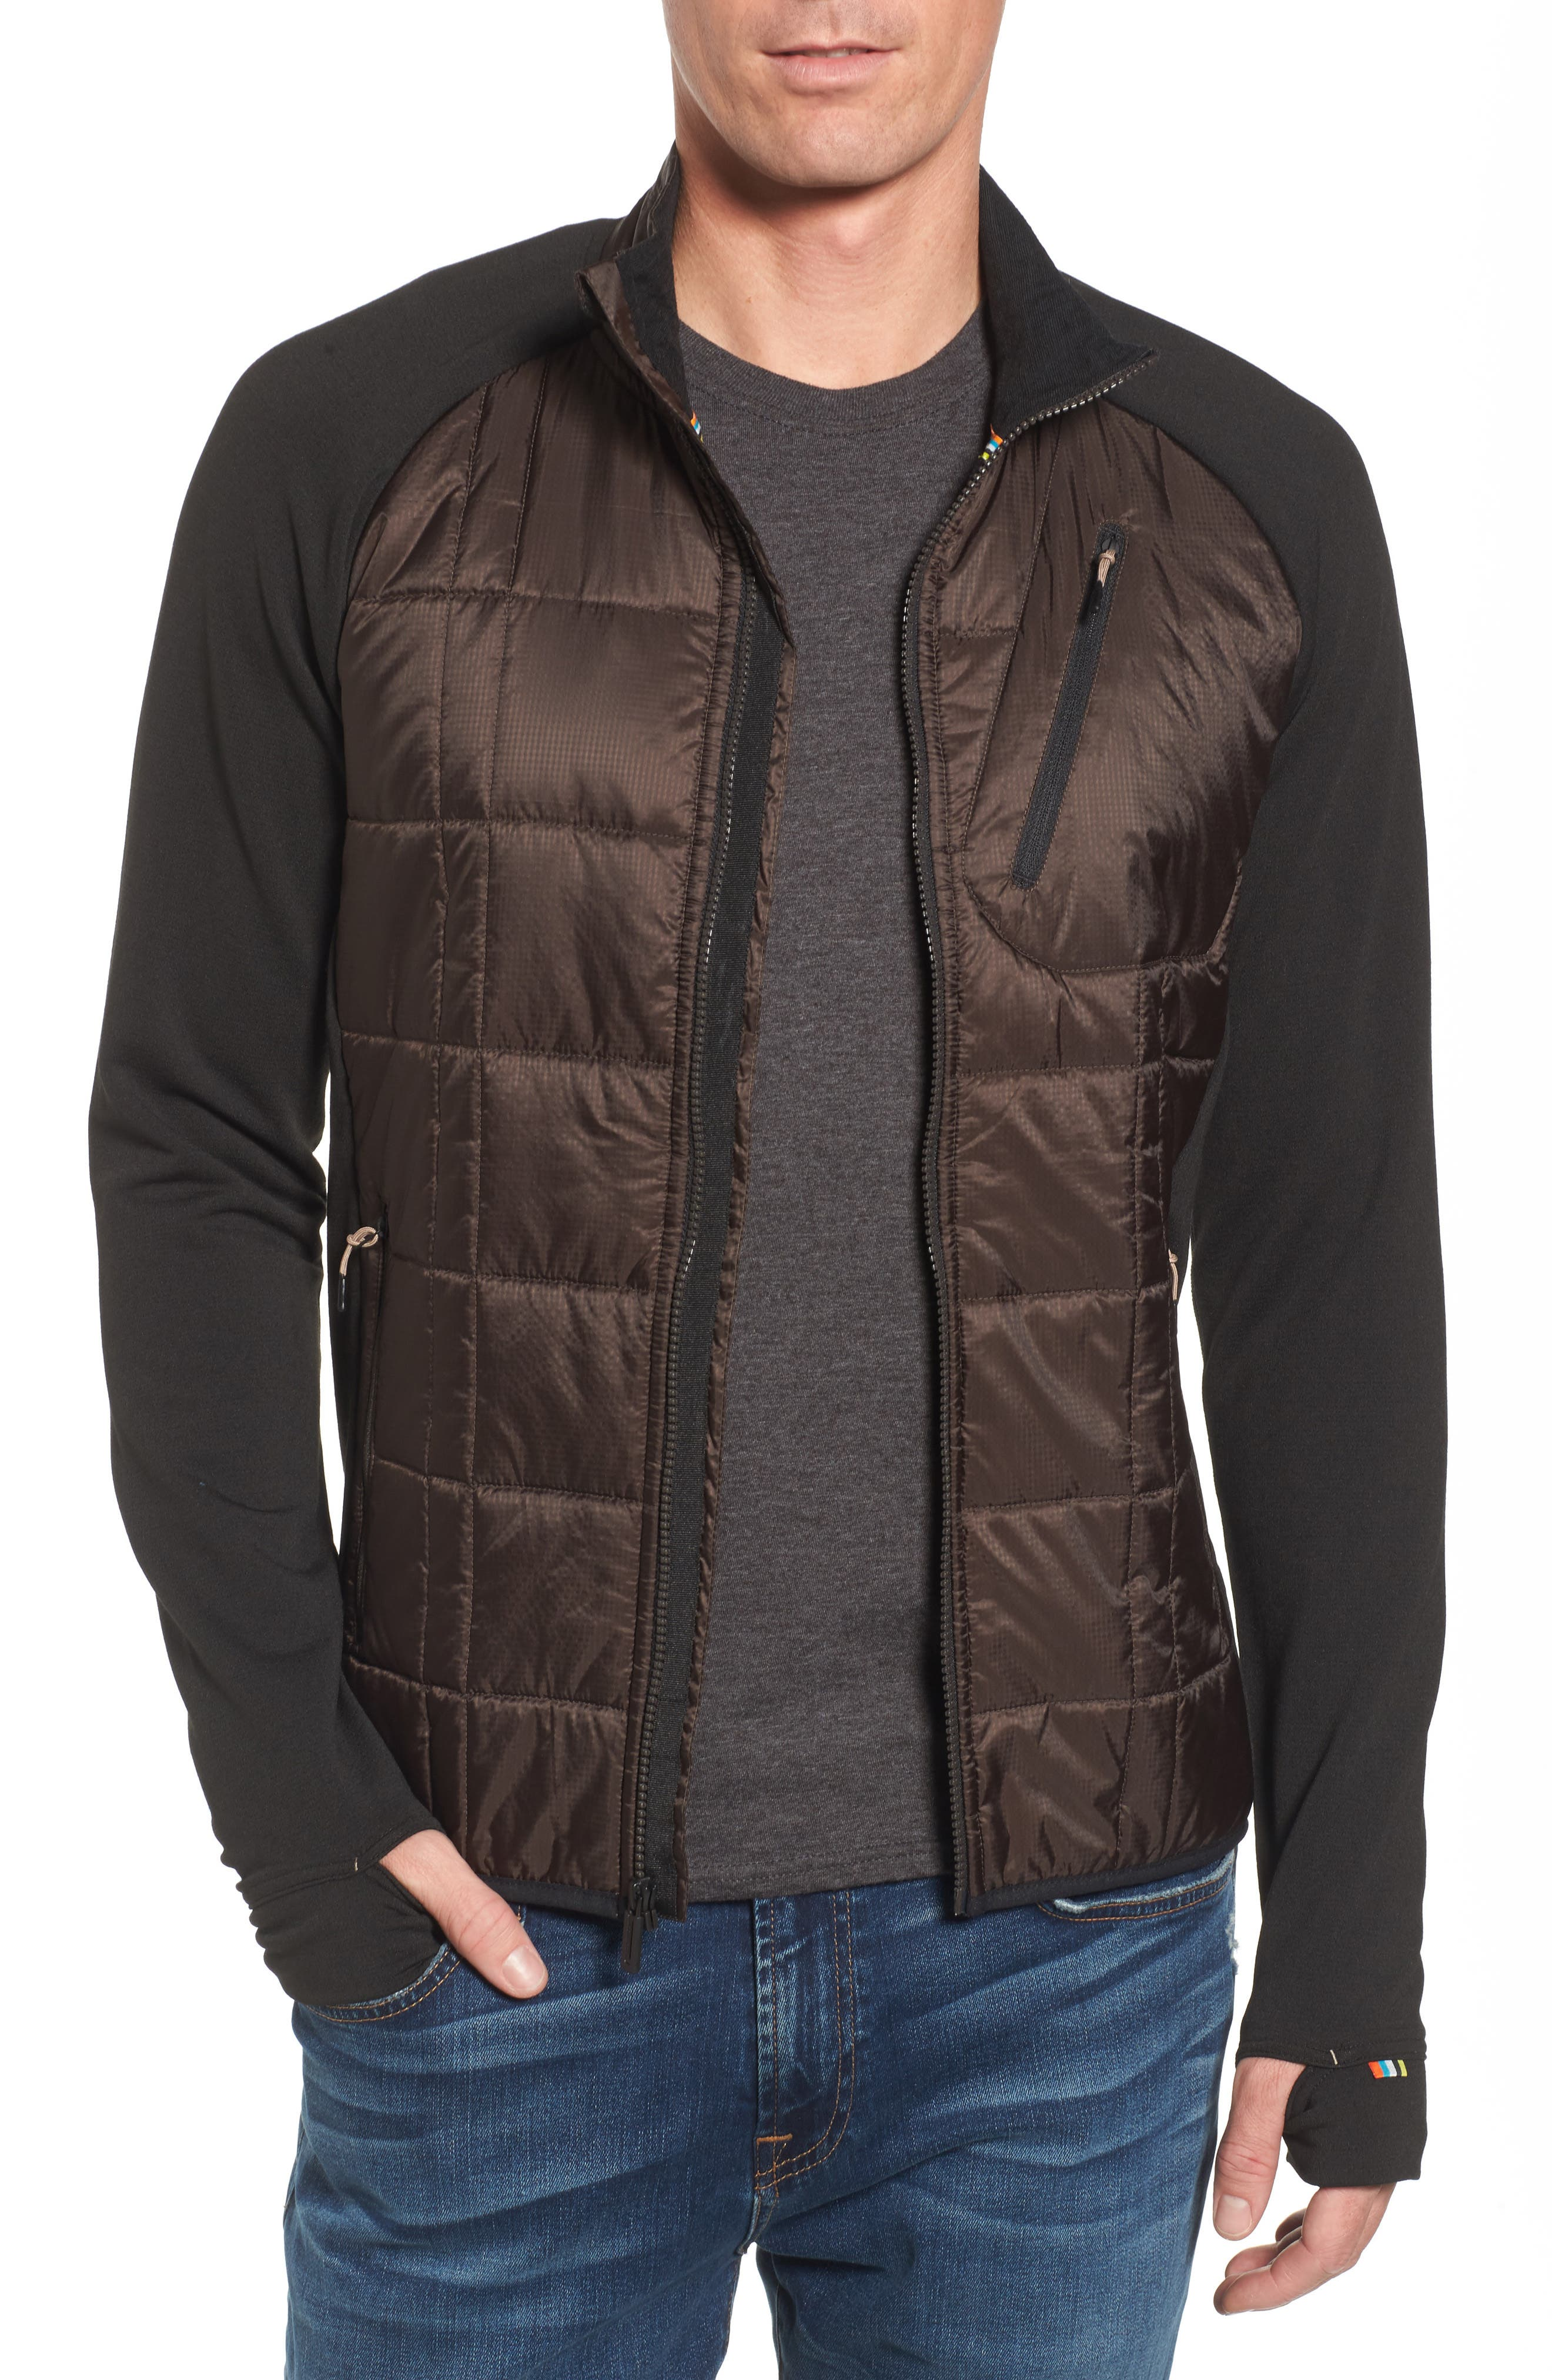 Corbet 120 Jacket,                             Main thumbnail 1, color,                             Sumatra